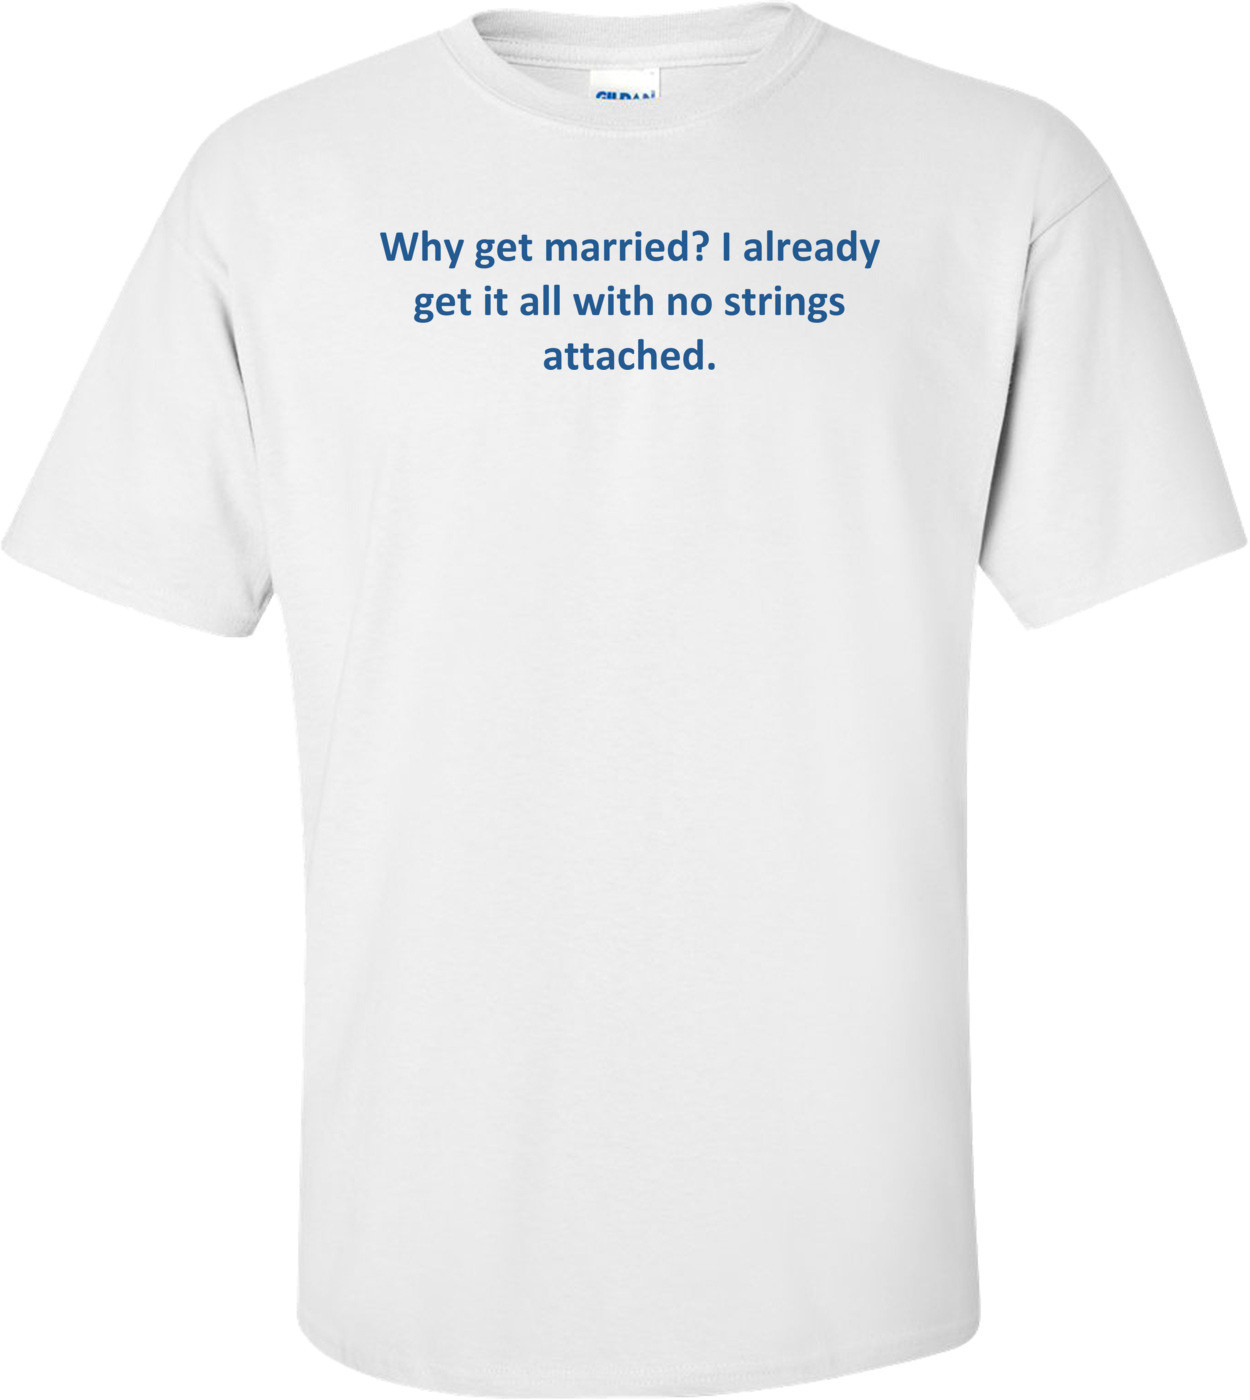 Why get married? I already get it all with no strings attached. Shirt